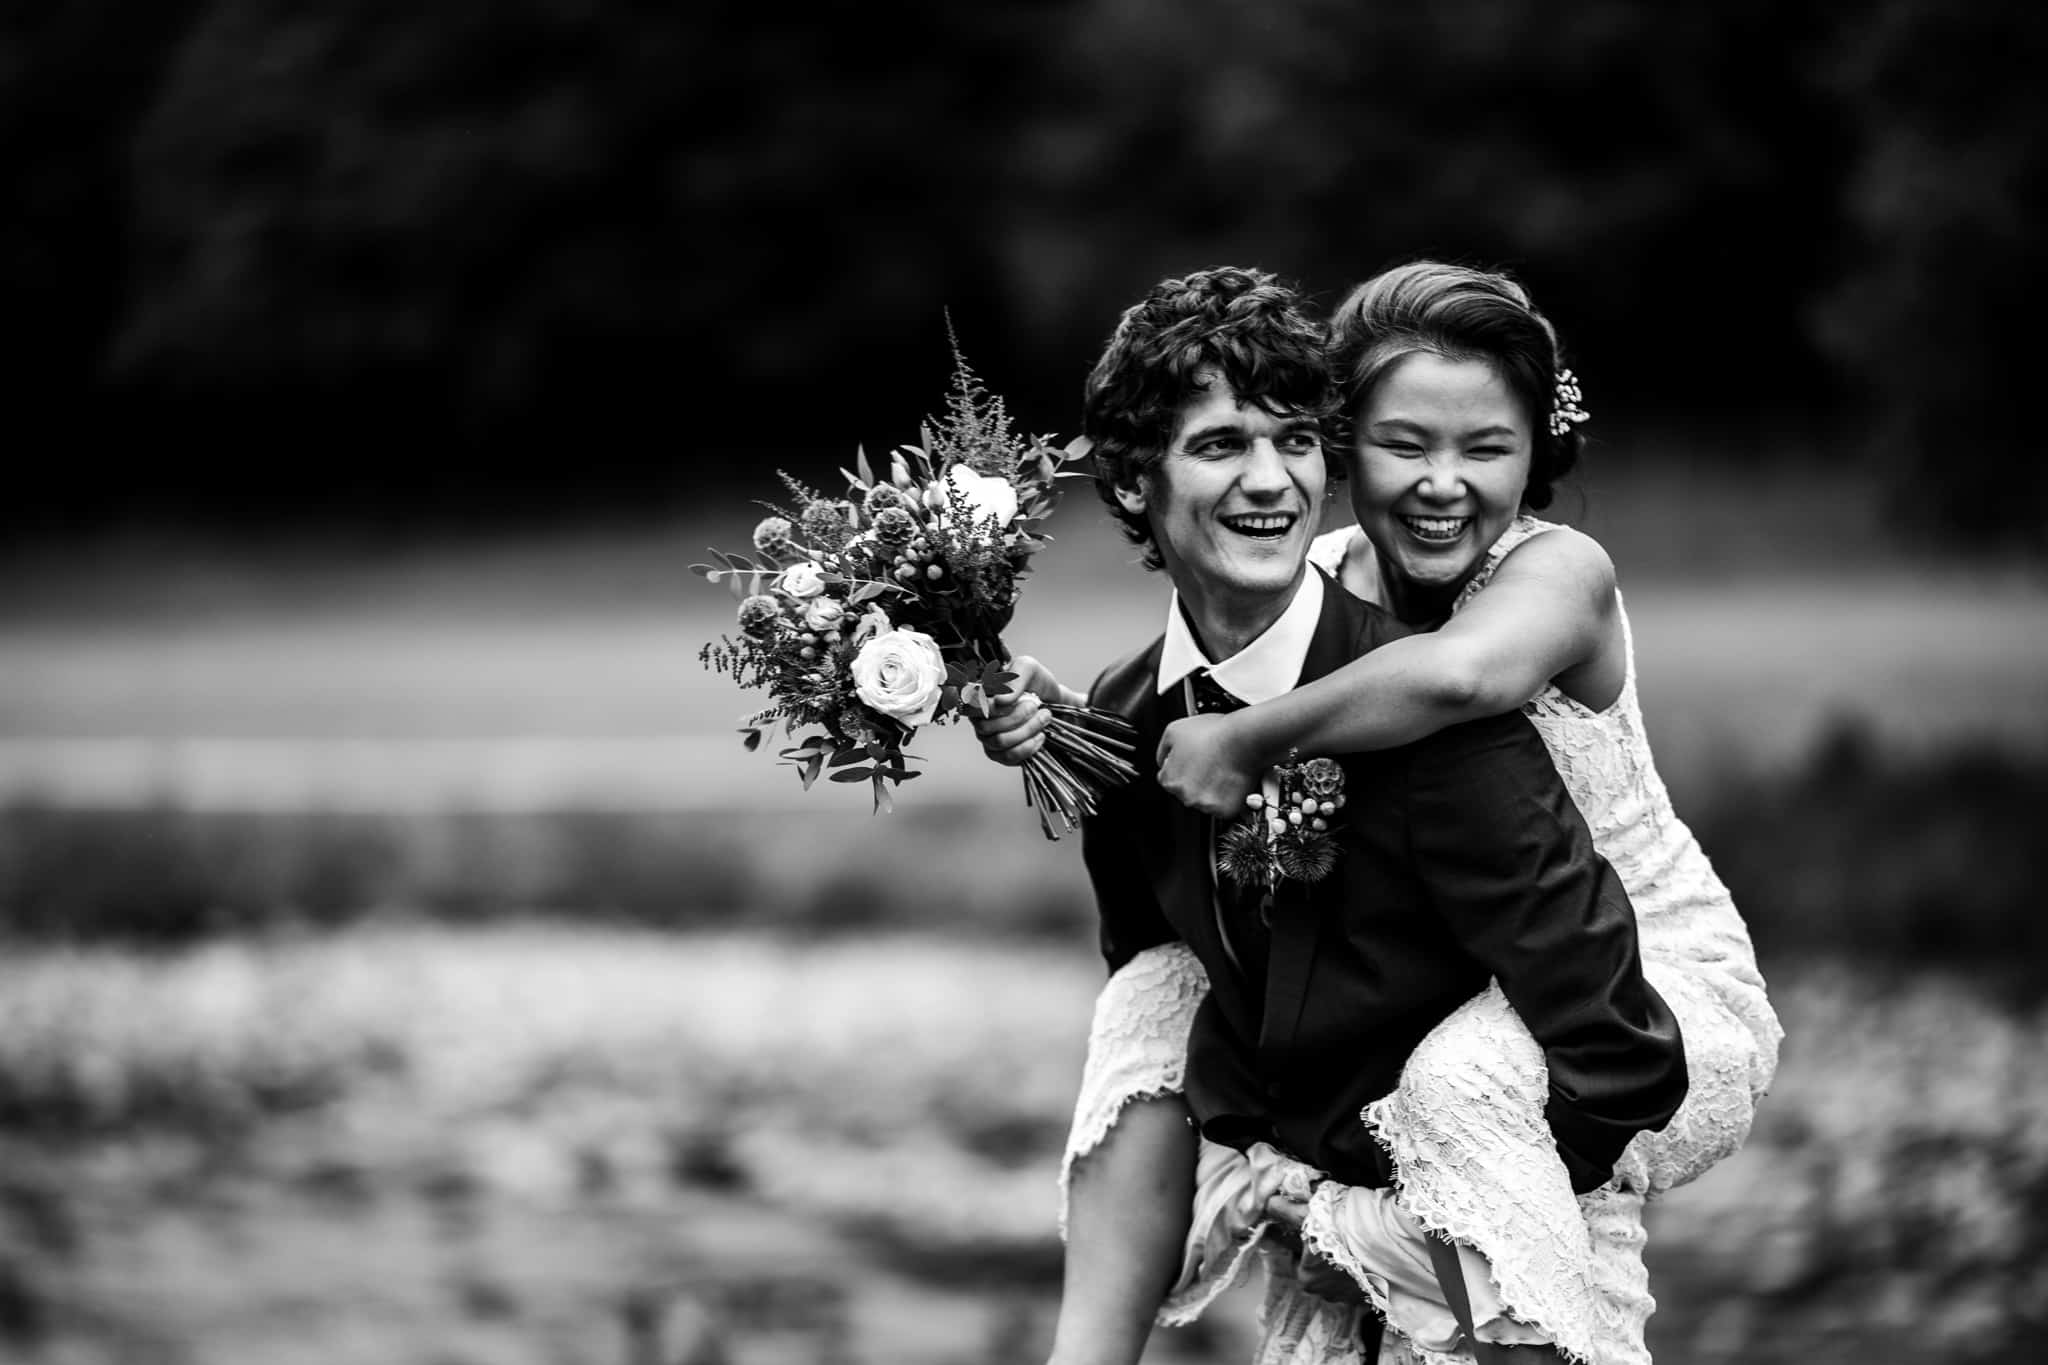 Bolton abbey wedding photographer